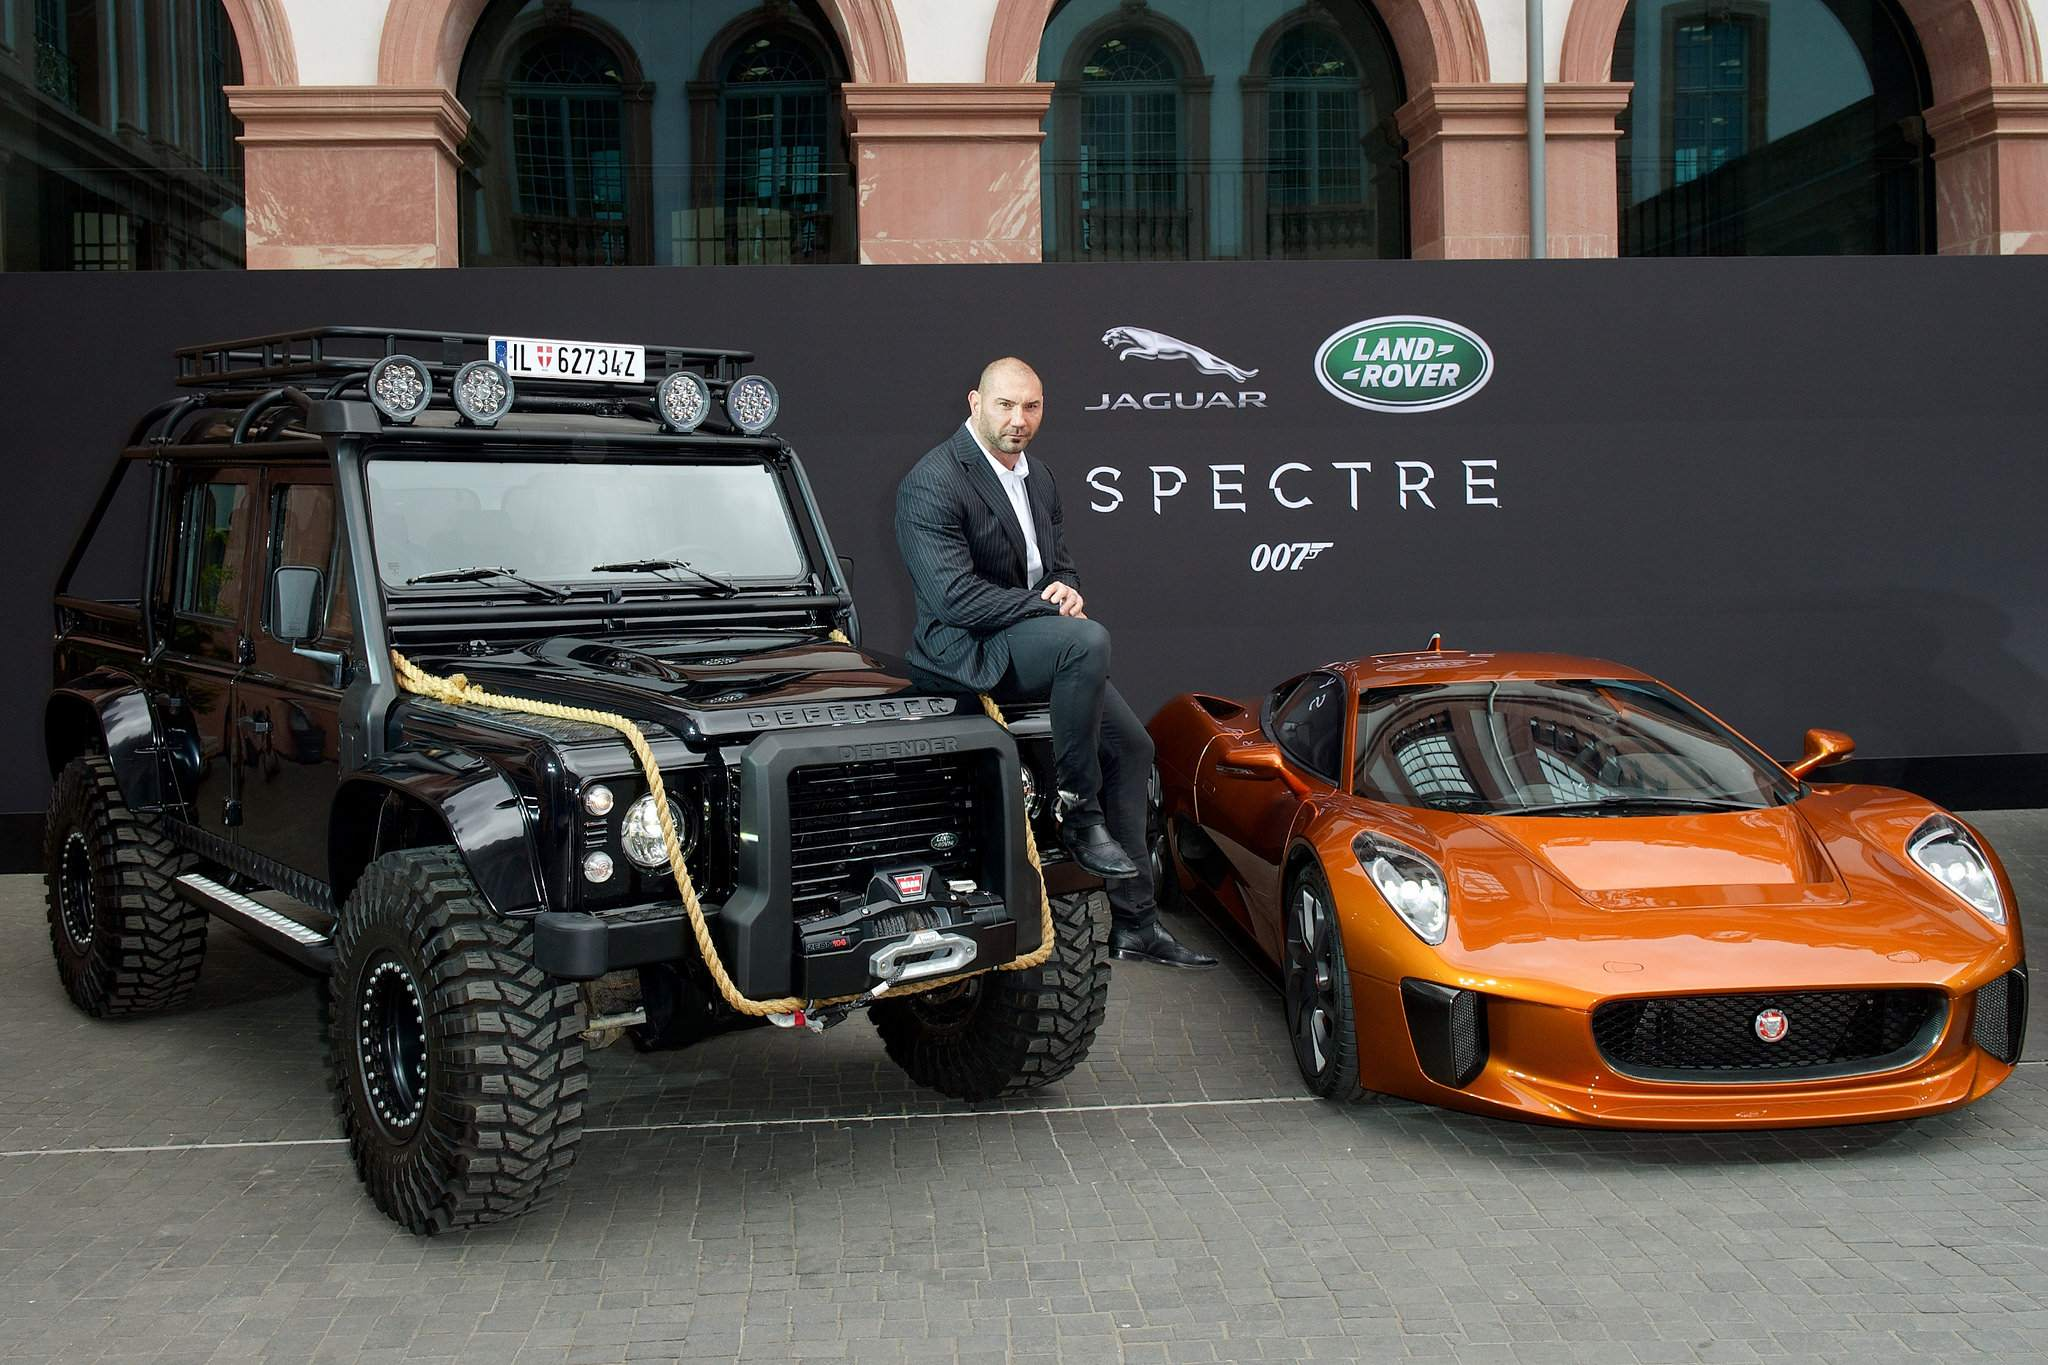 spectre car1 Jaguar Land Rover Latest Bond Cars